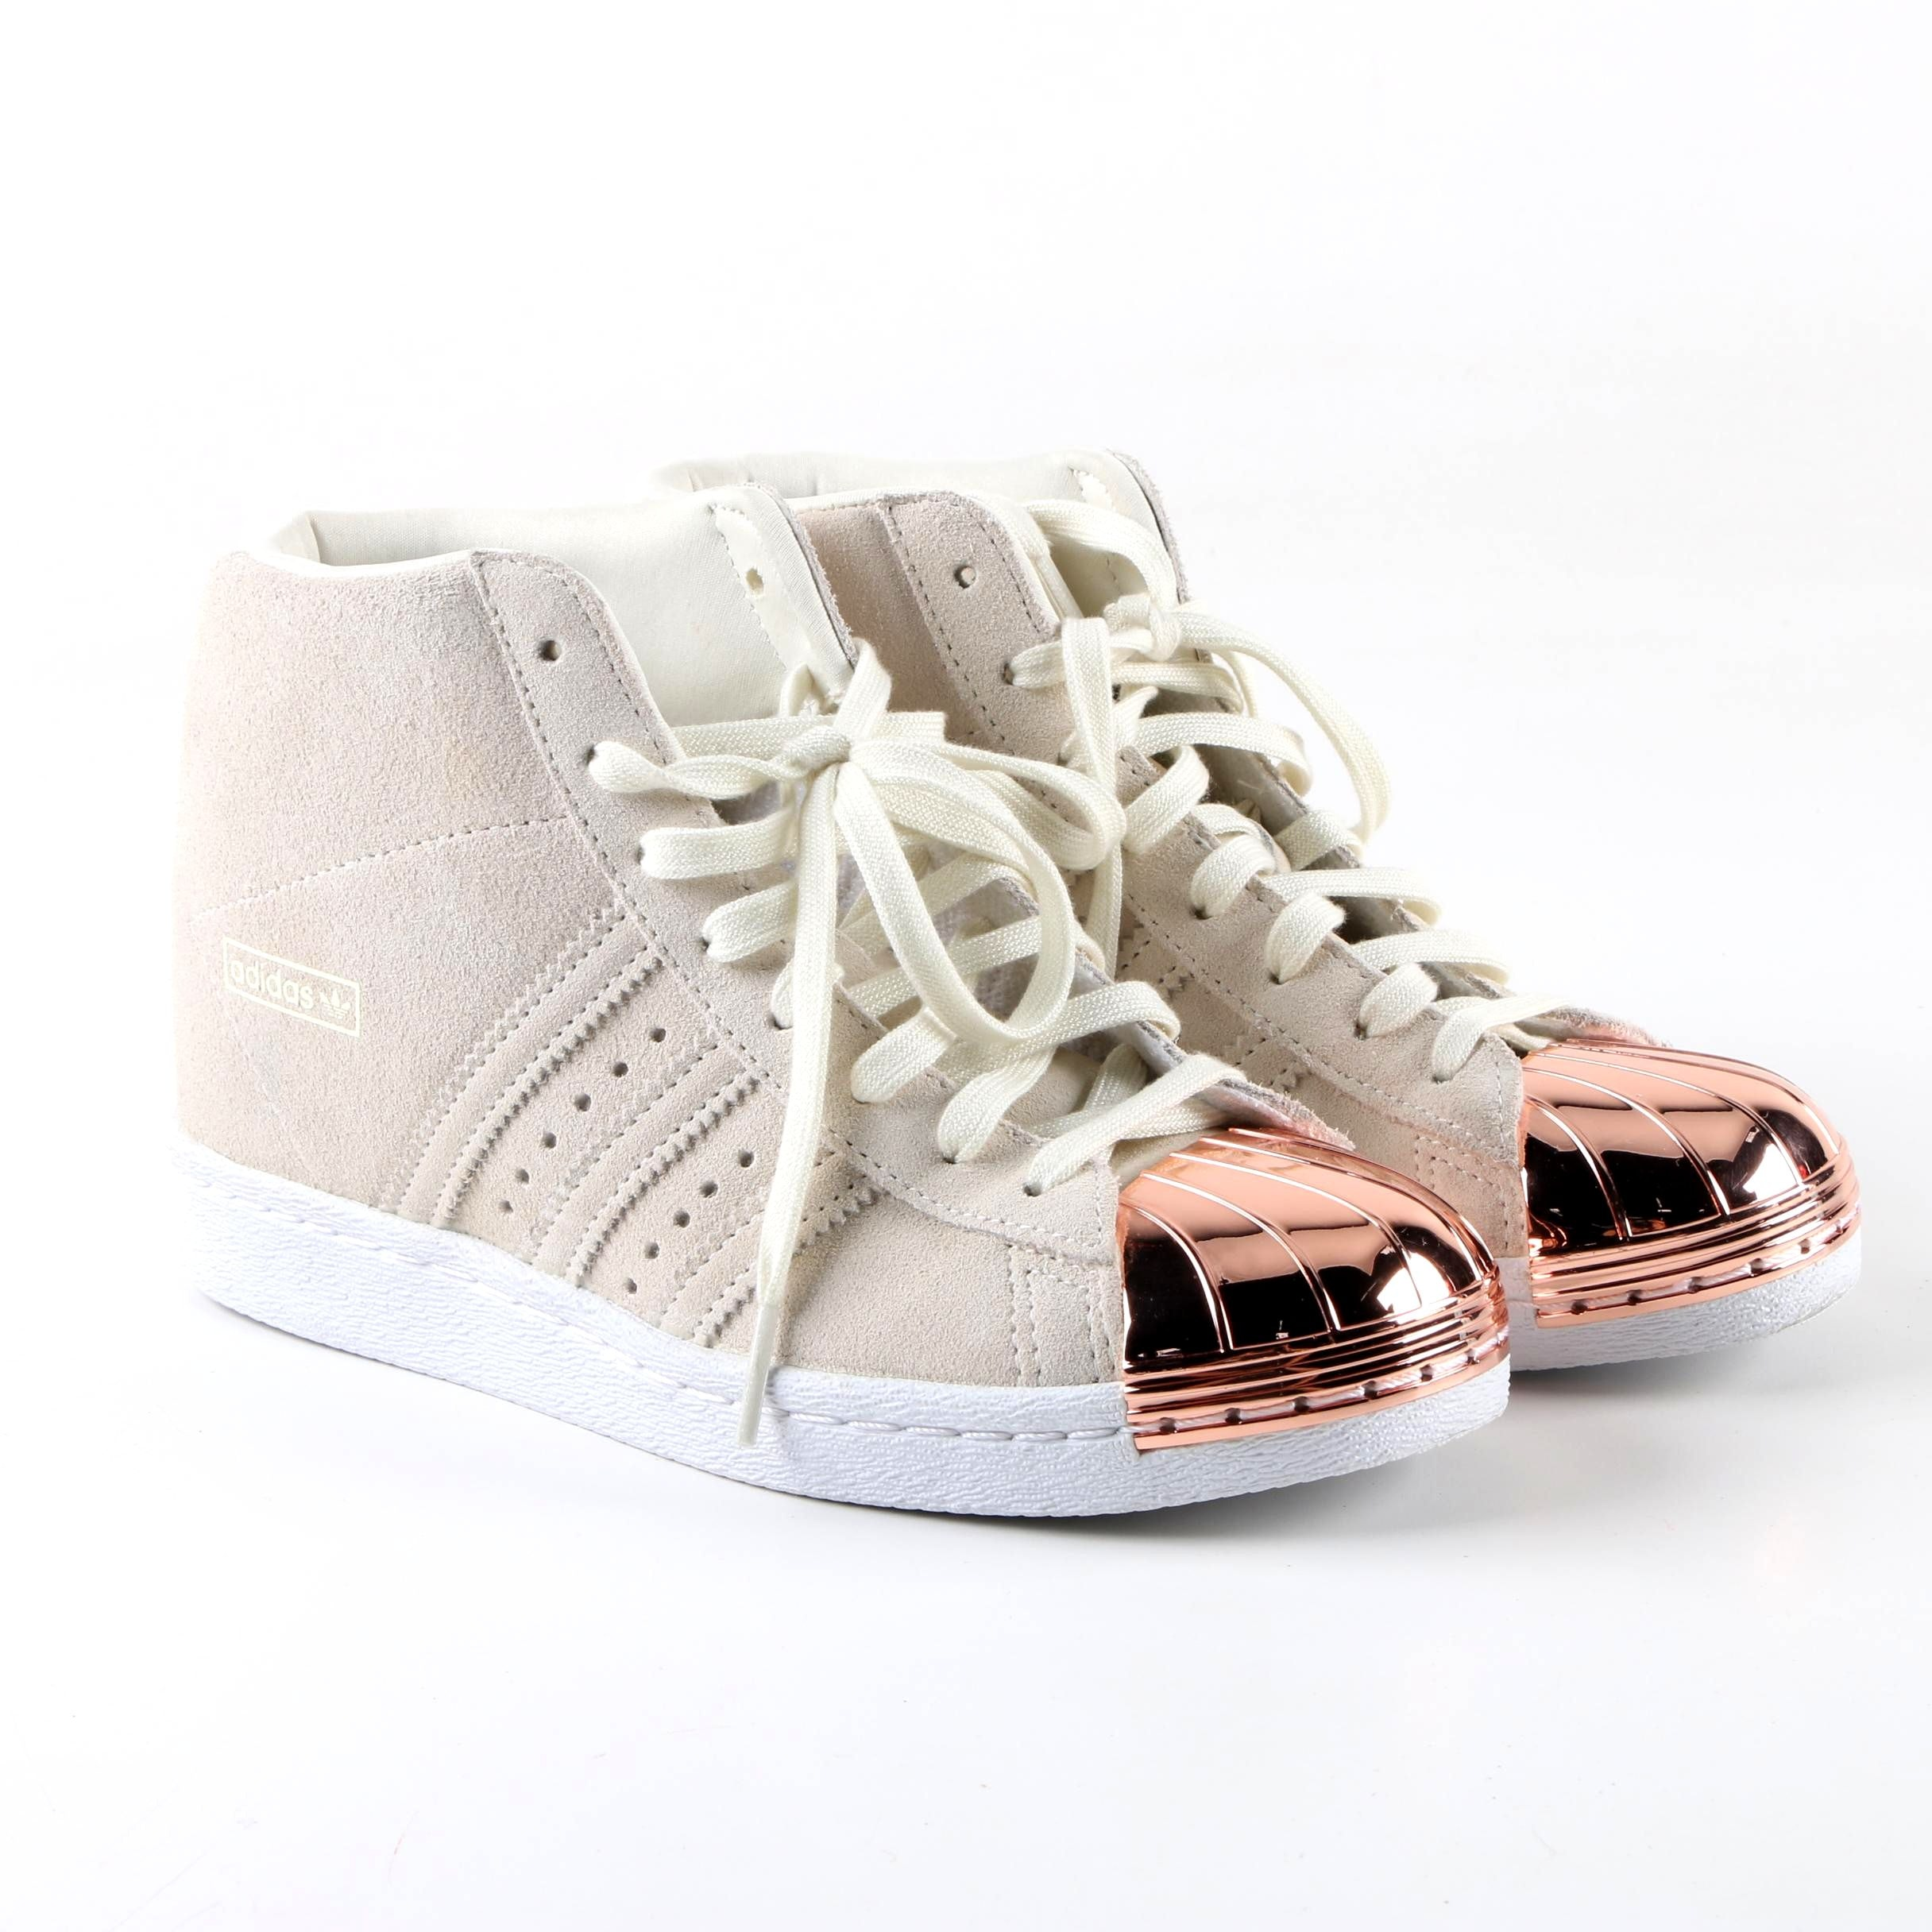 Adidas Superstar Up Metal Toe Off-White Suede High Top Sneakers